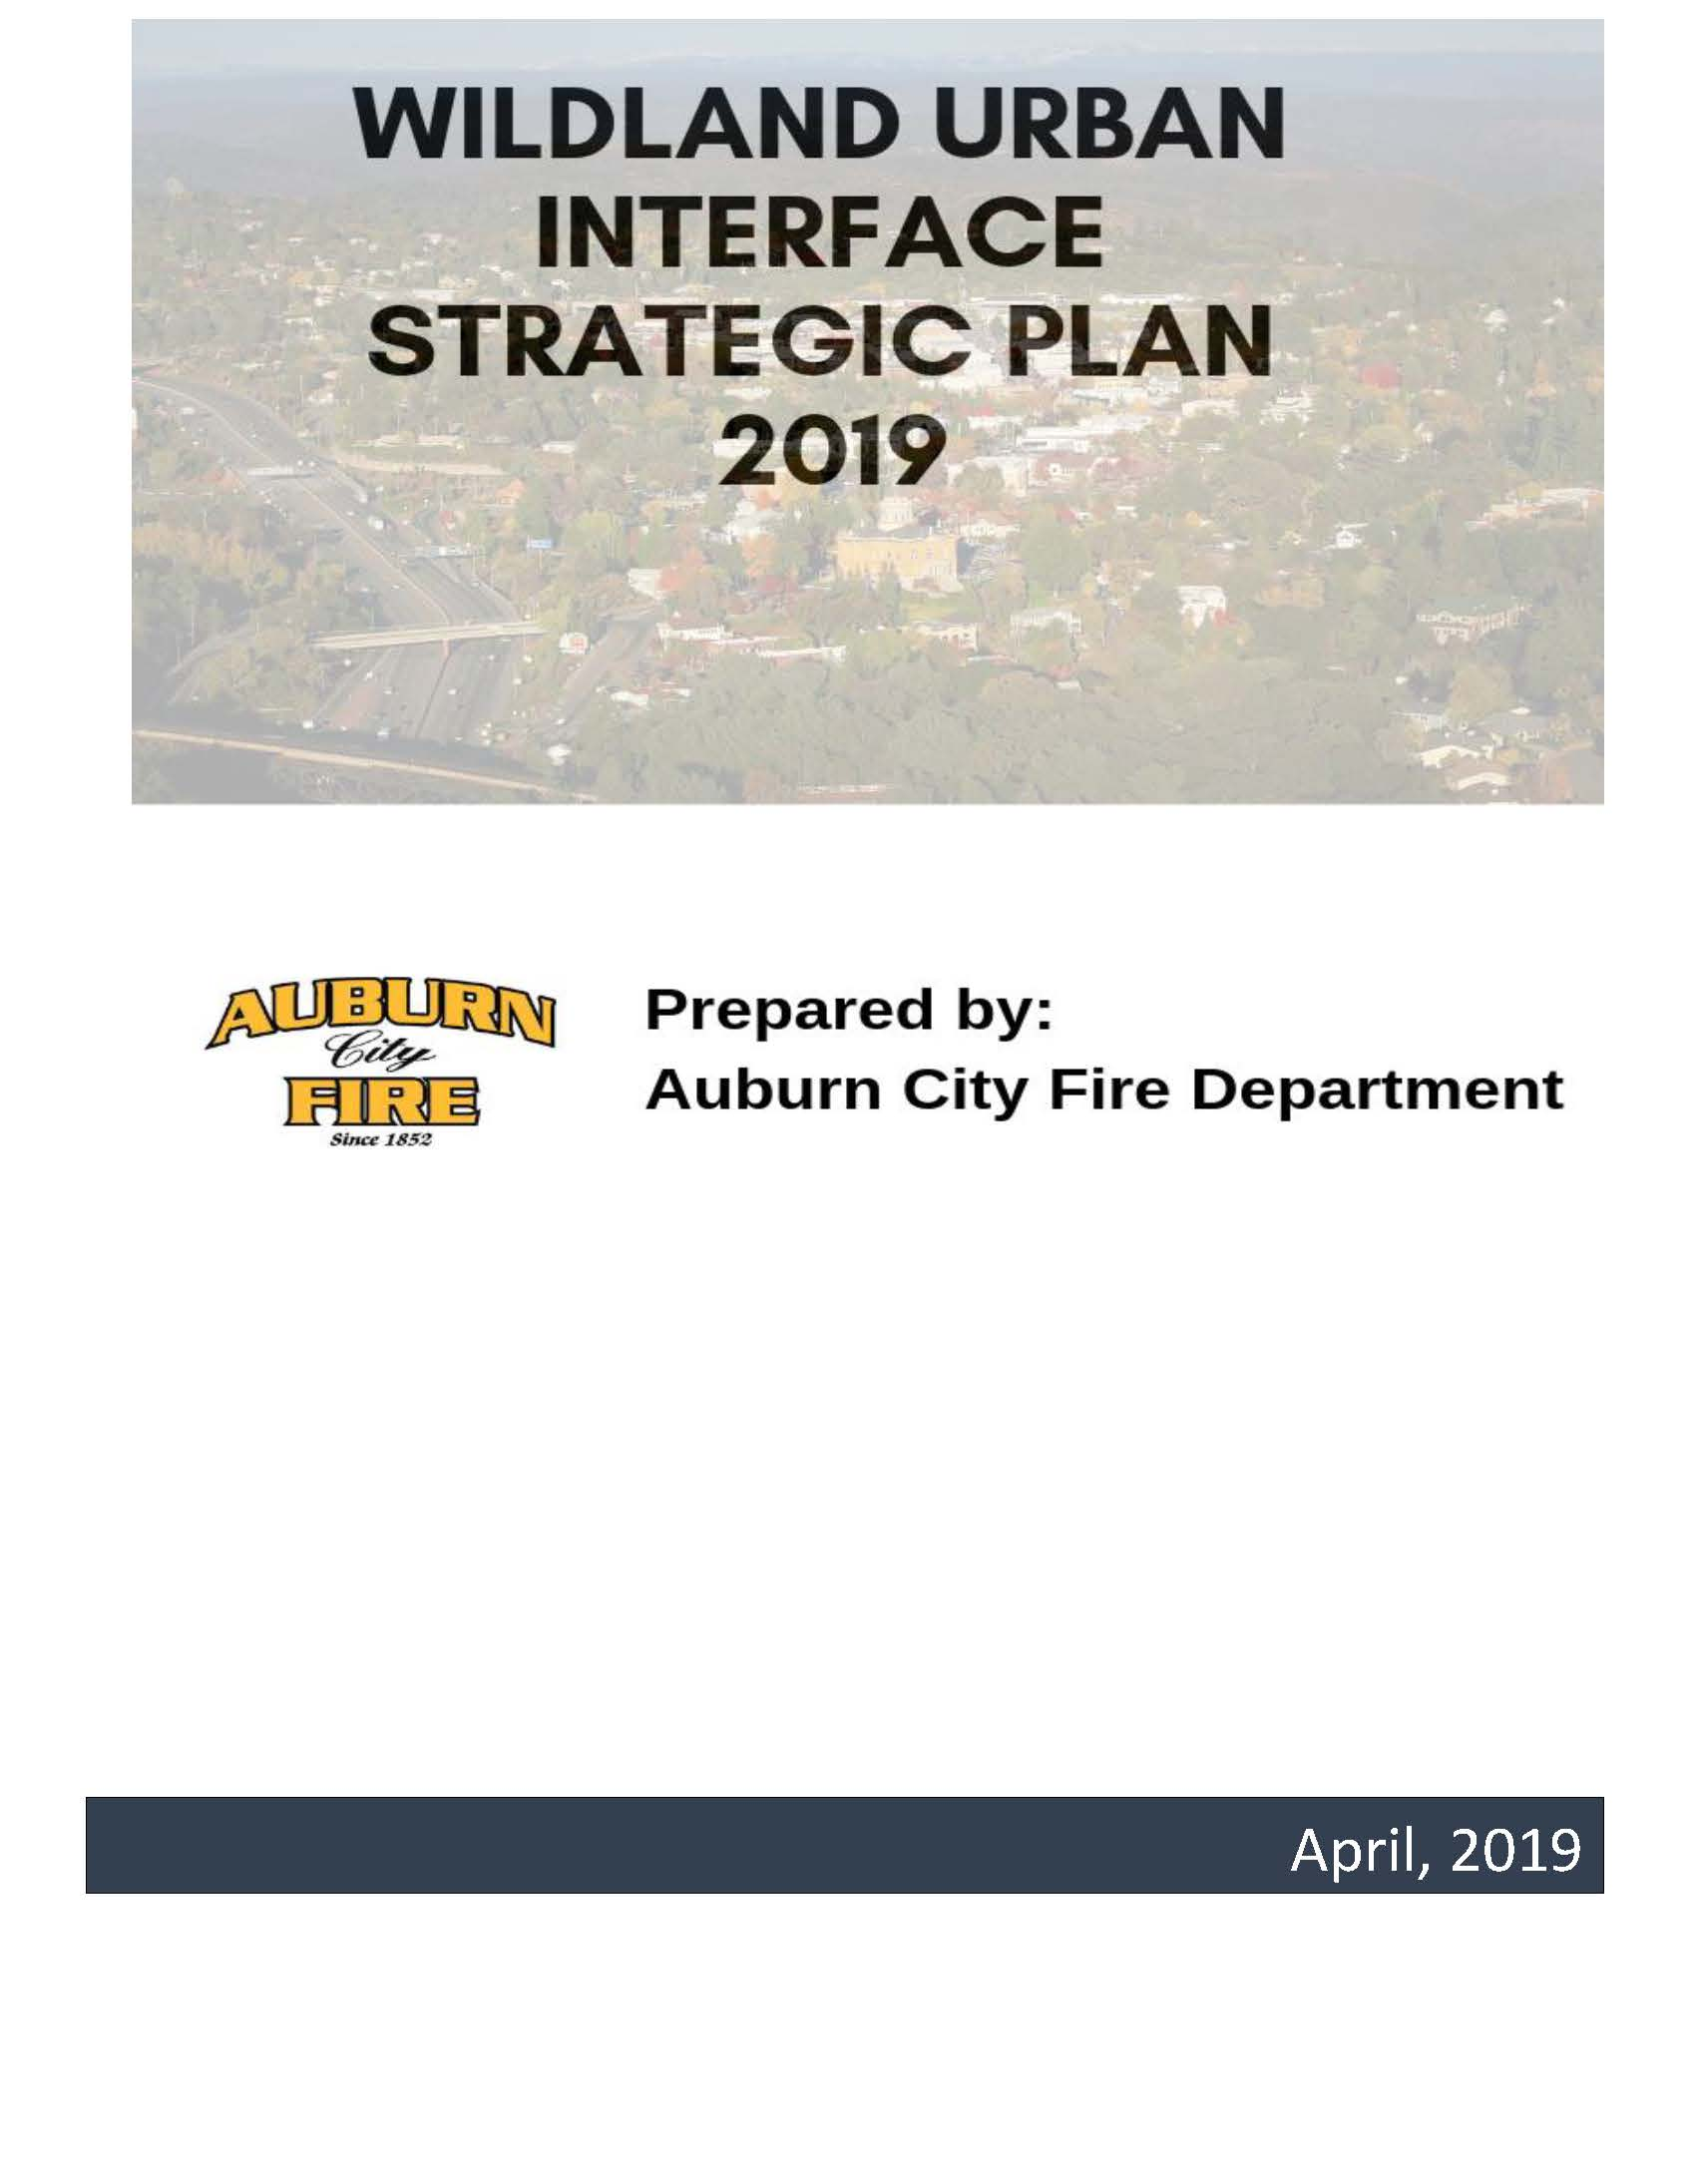 Image from Auburn City Fire Wildland Urban Interface Strategic Plan Opens in new window